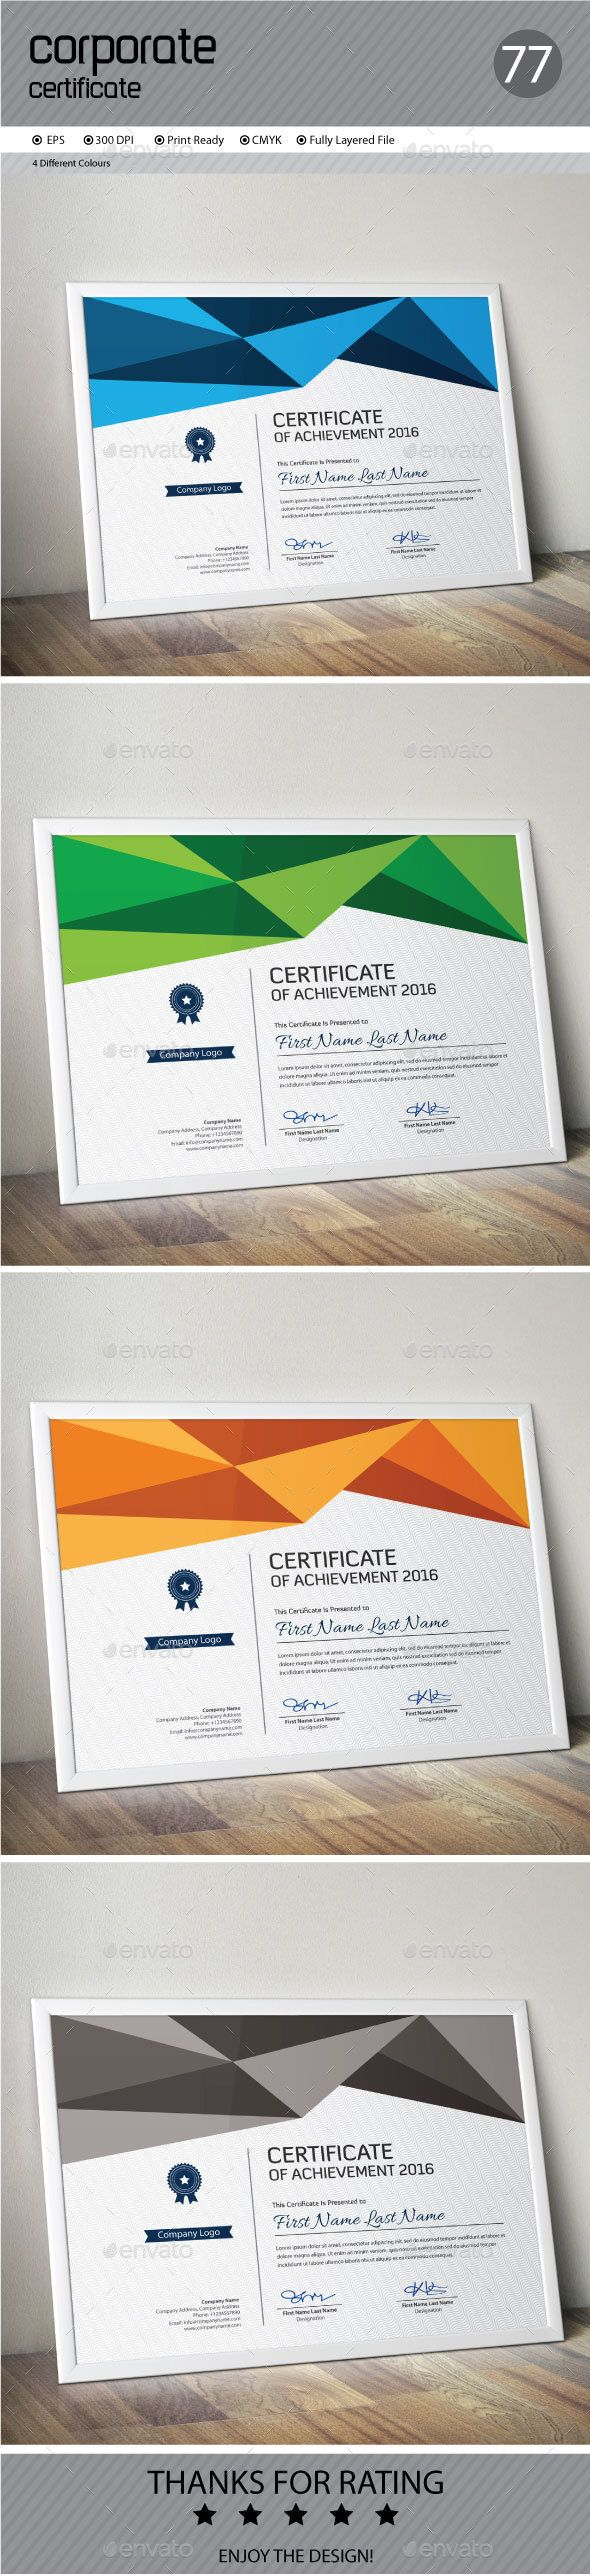 Best 100 certificate templates designs images on pinterest certificate yelopaper Images